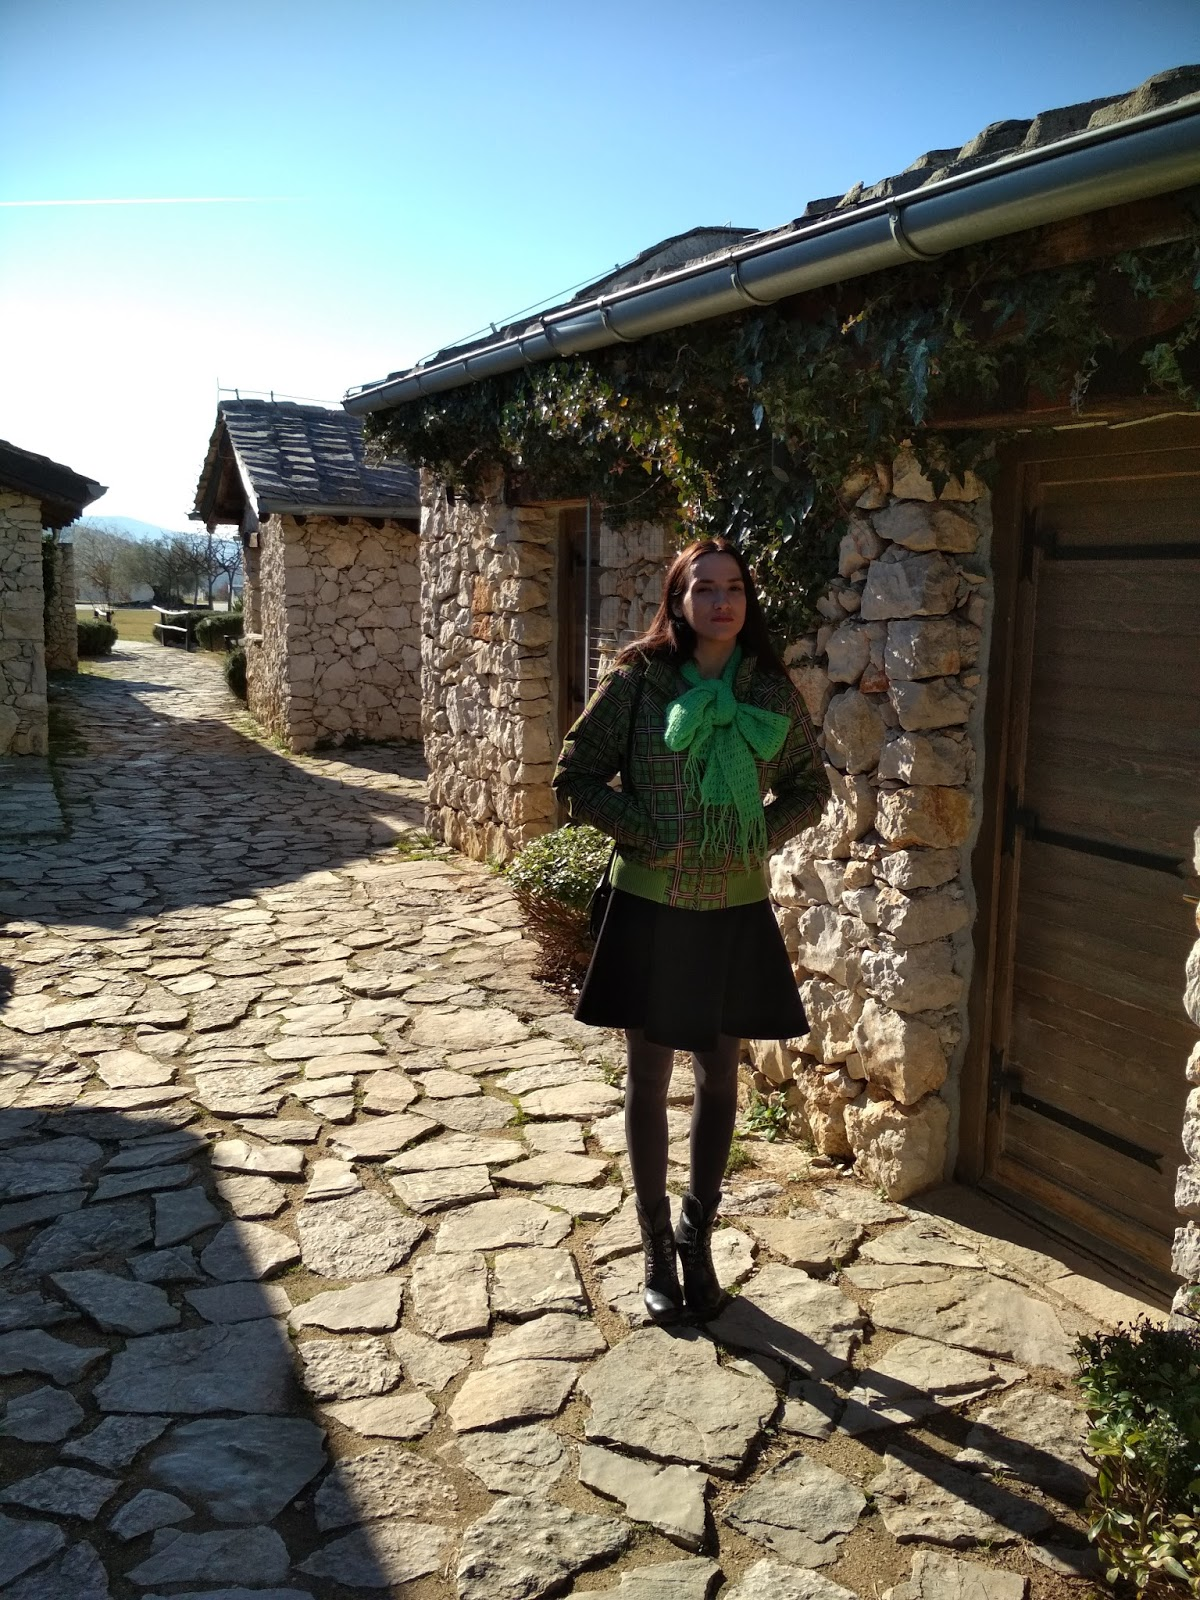 A little black skater dress and a green winter jacket (Ethno village Herceg, Herzegovina)